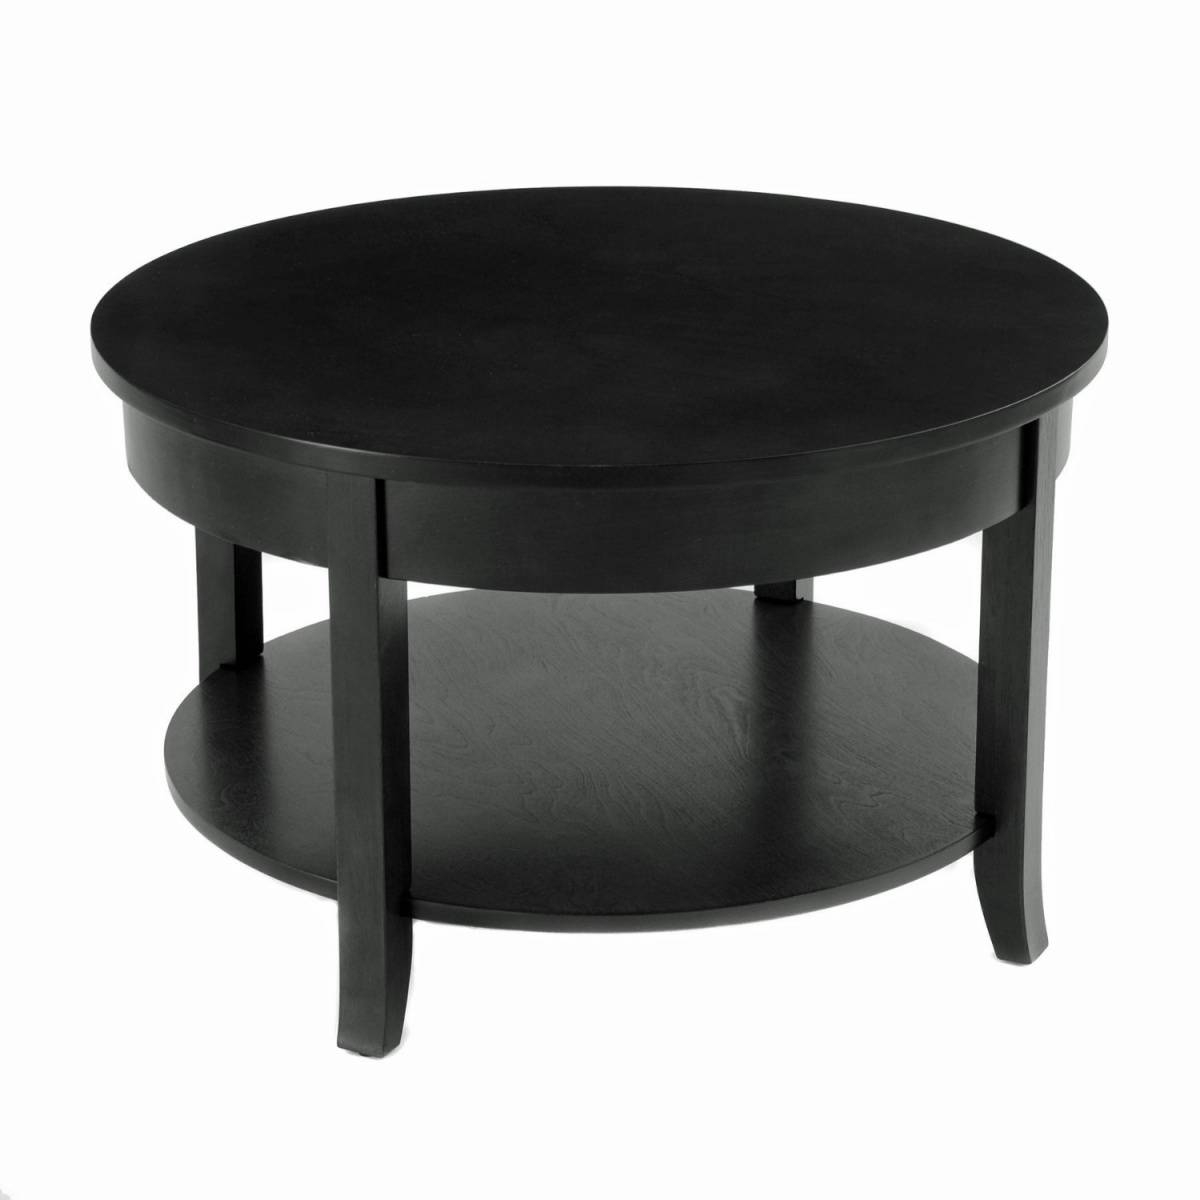 Round Coffee Table With Storage 30 The Best Round Coffee Tables With Storage